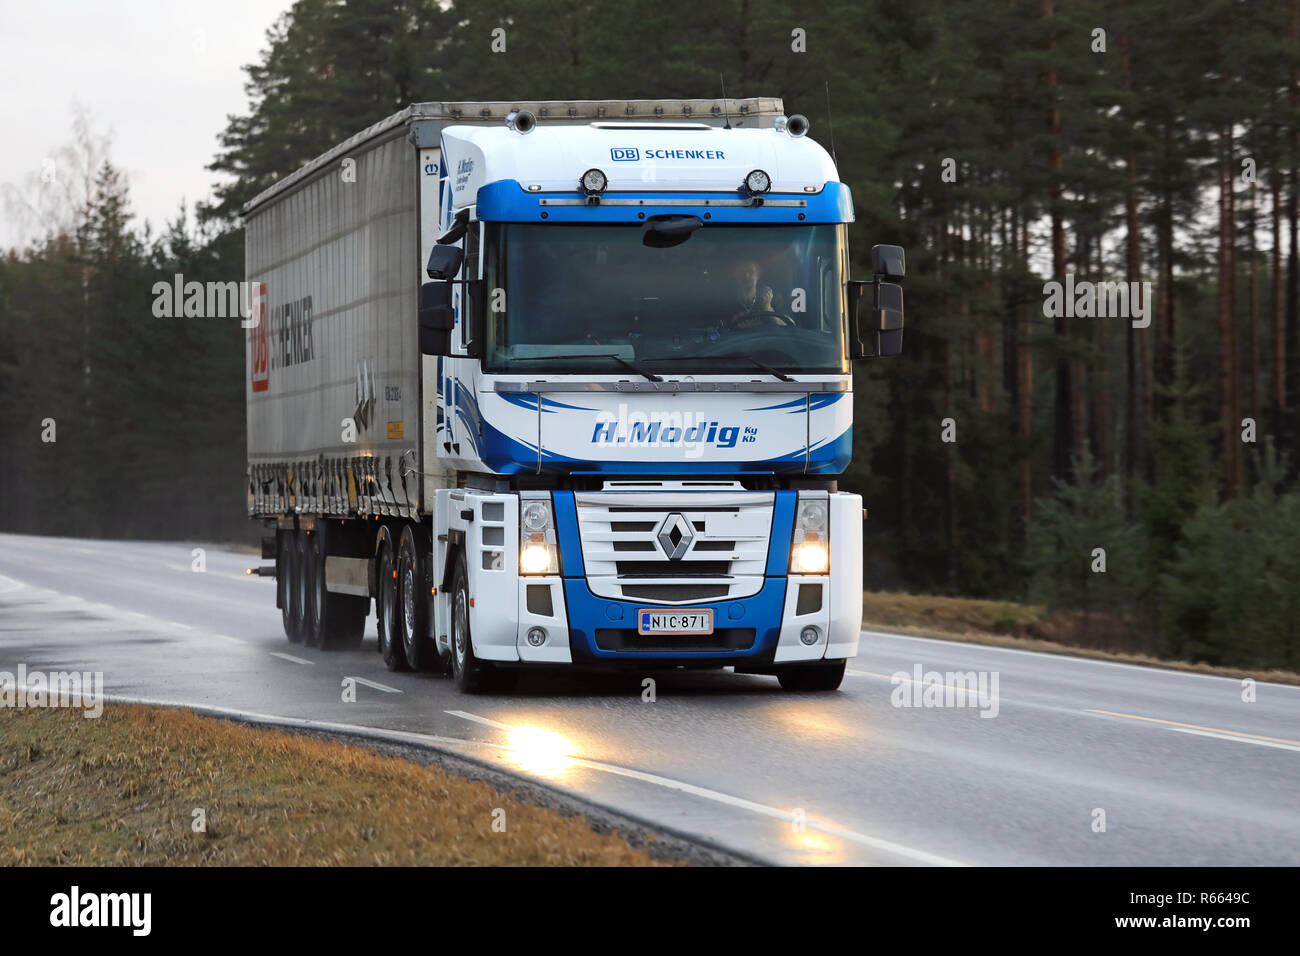 renault magnum high resolution stock photography and images alamy https www alamy com salo finland december 8 2017 blue and white renault magnum truck of helmer modig oy pulls db schenker trailer along wet highway in early winter image227557832 html